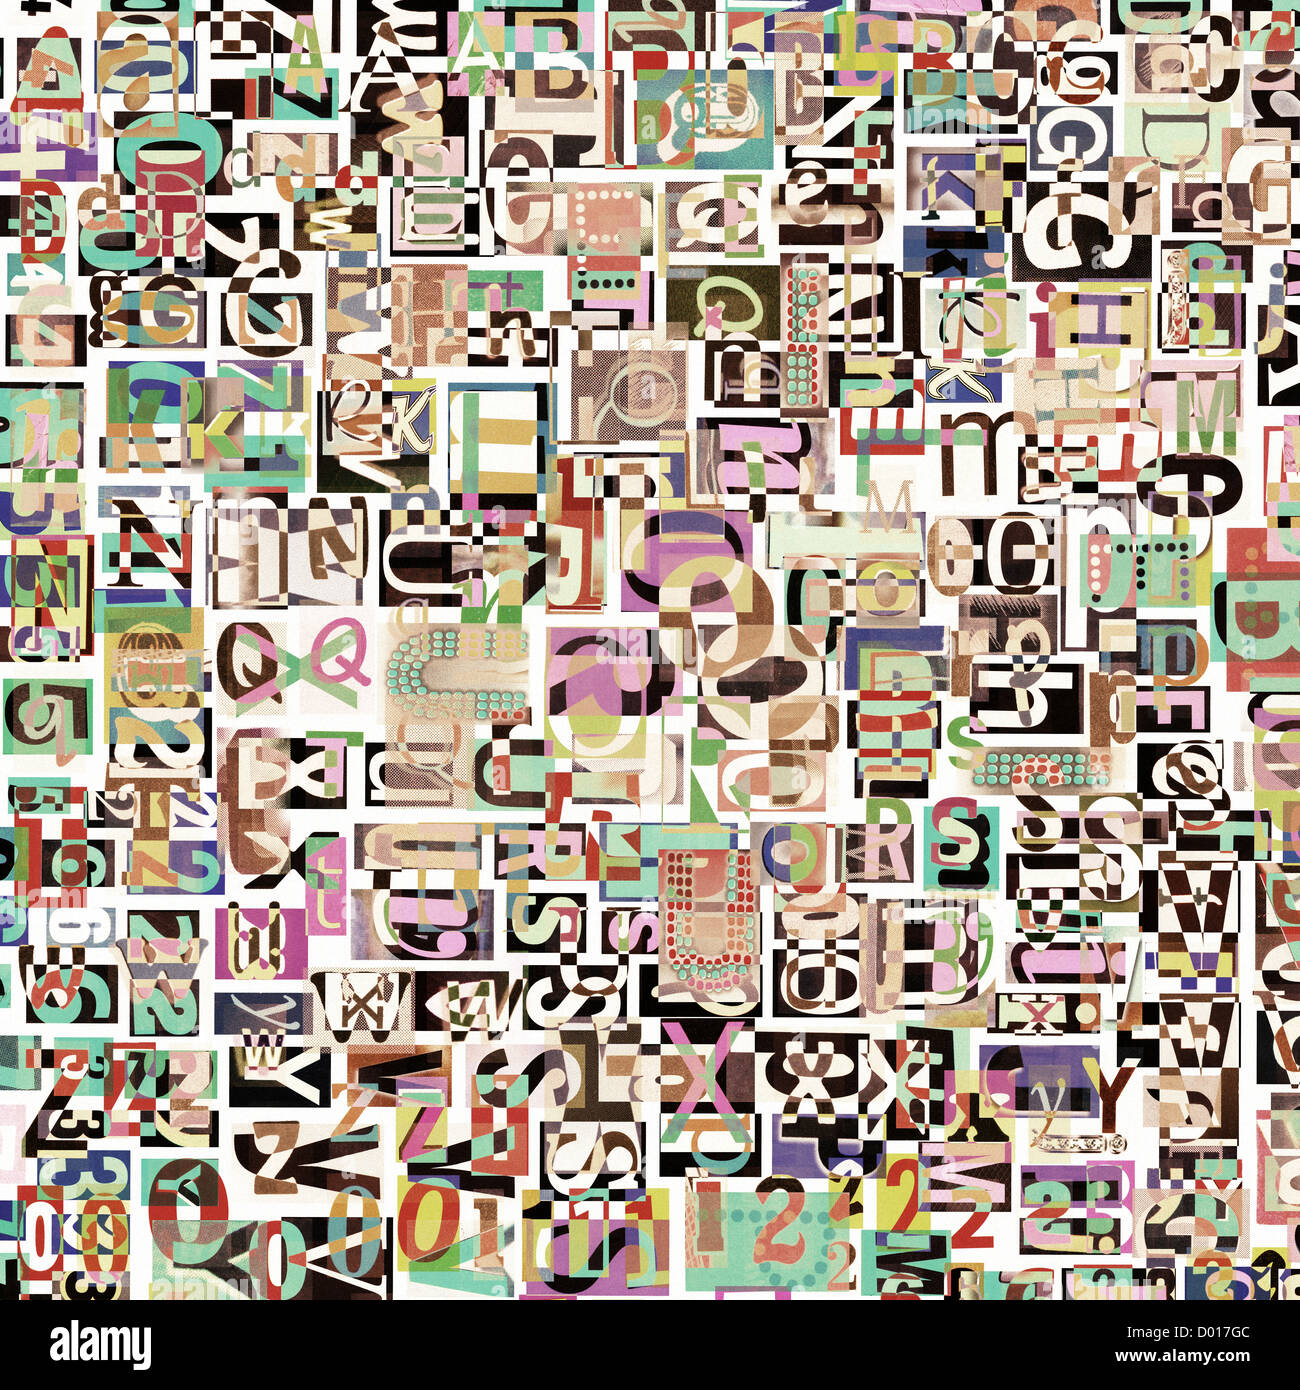 designed background. digital collage made of newspaper clippings